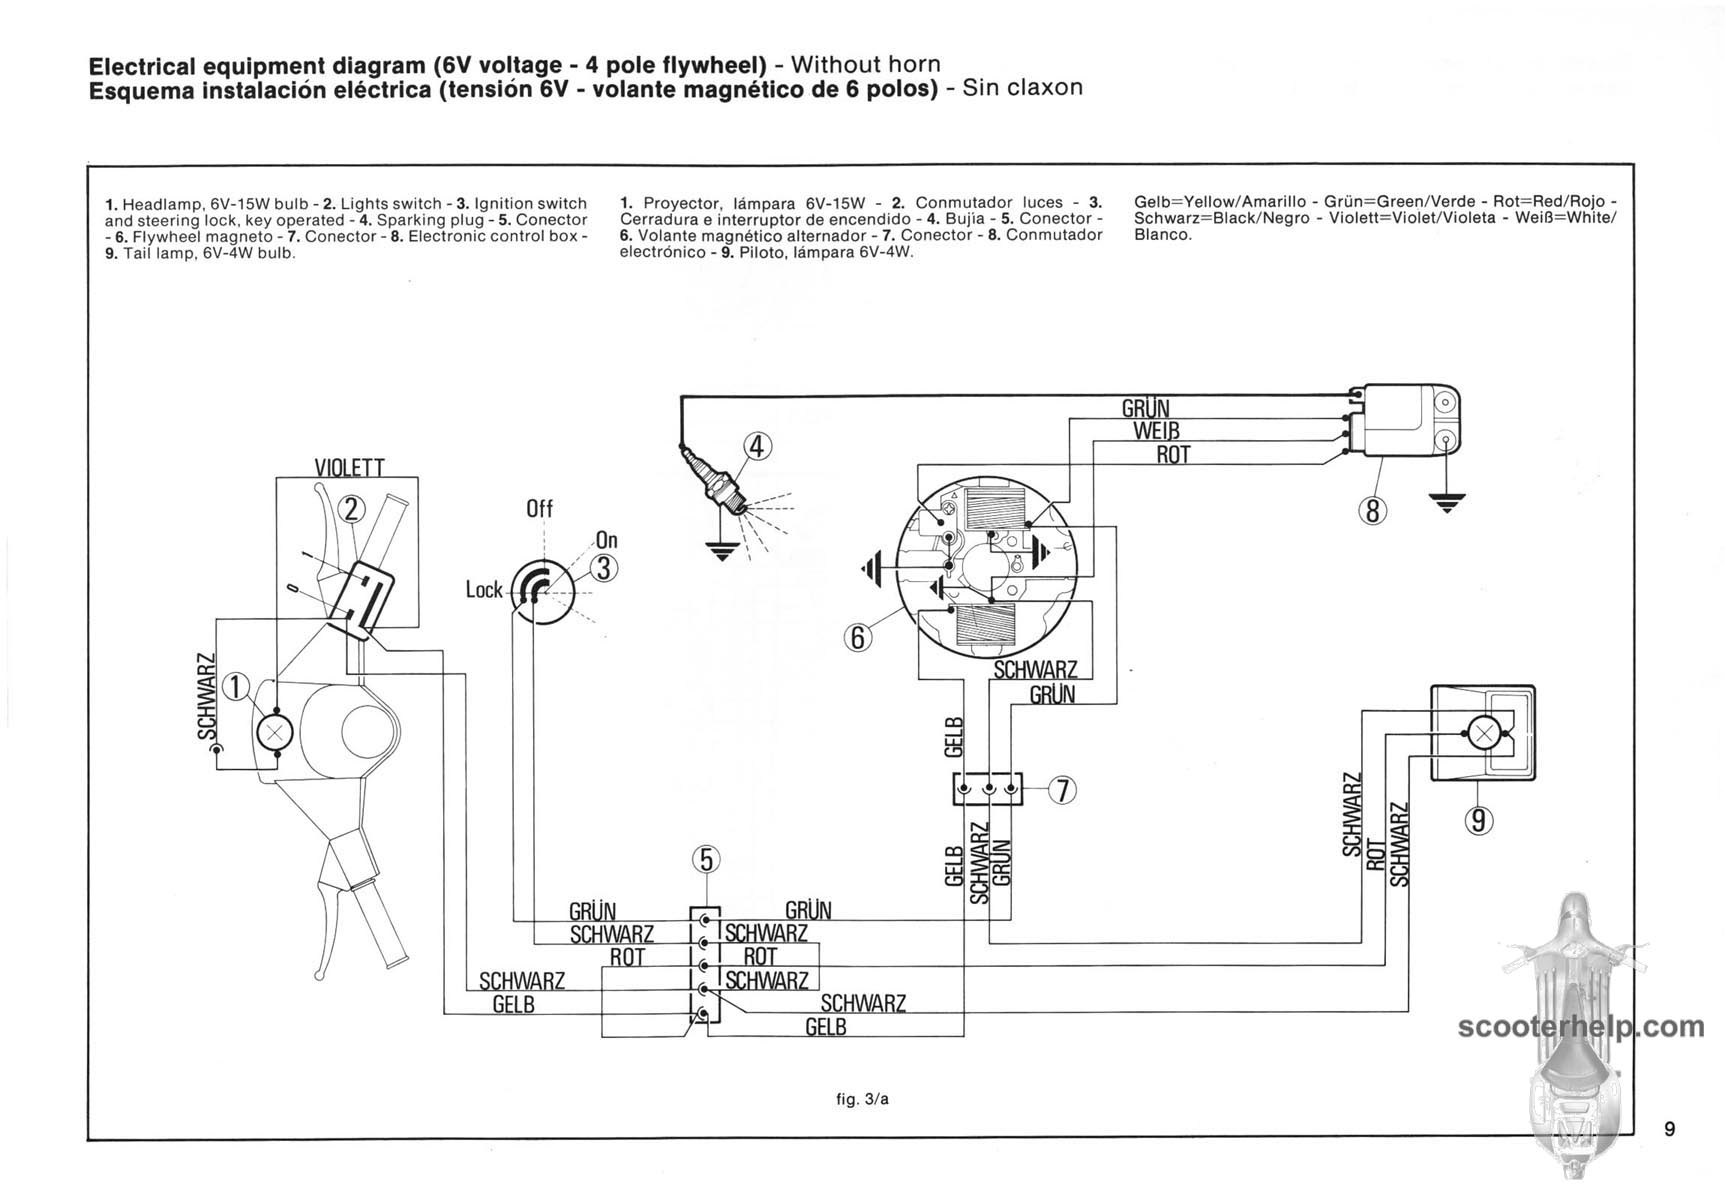 09 pk factory repair manual vespa p125x wiring diagram at eliteediting.co